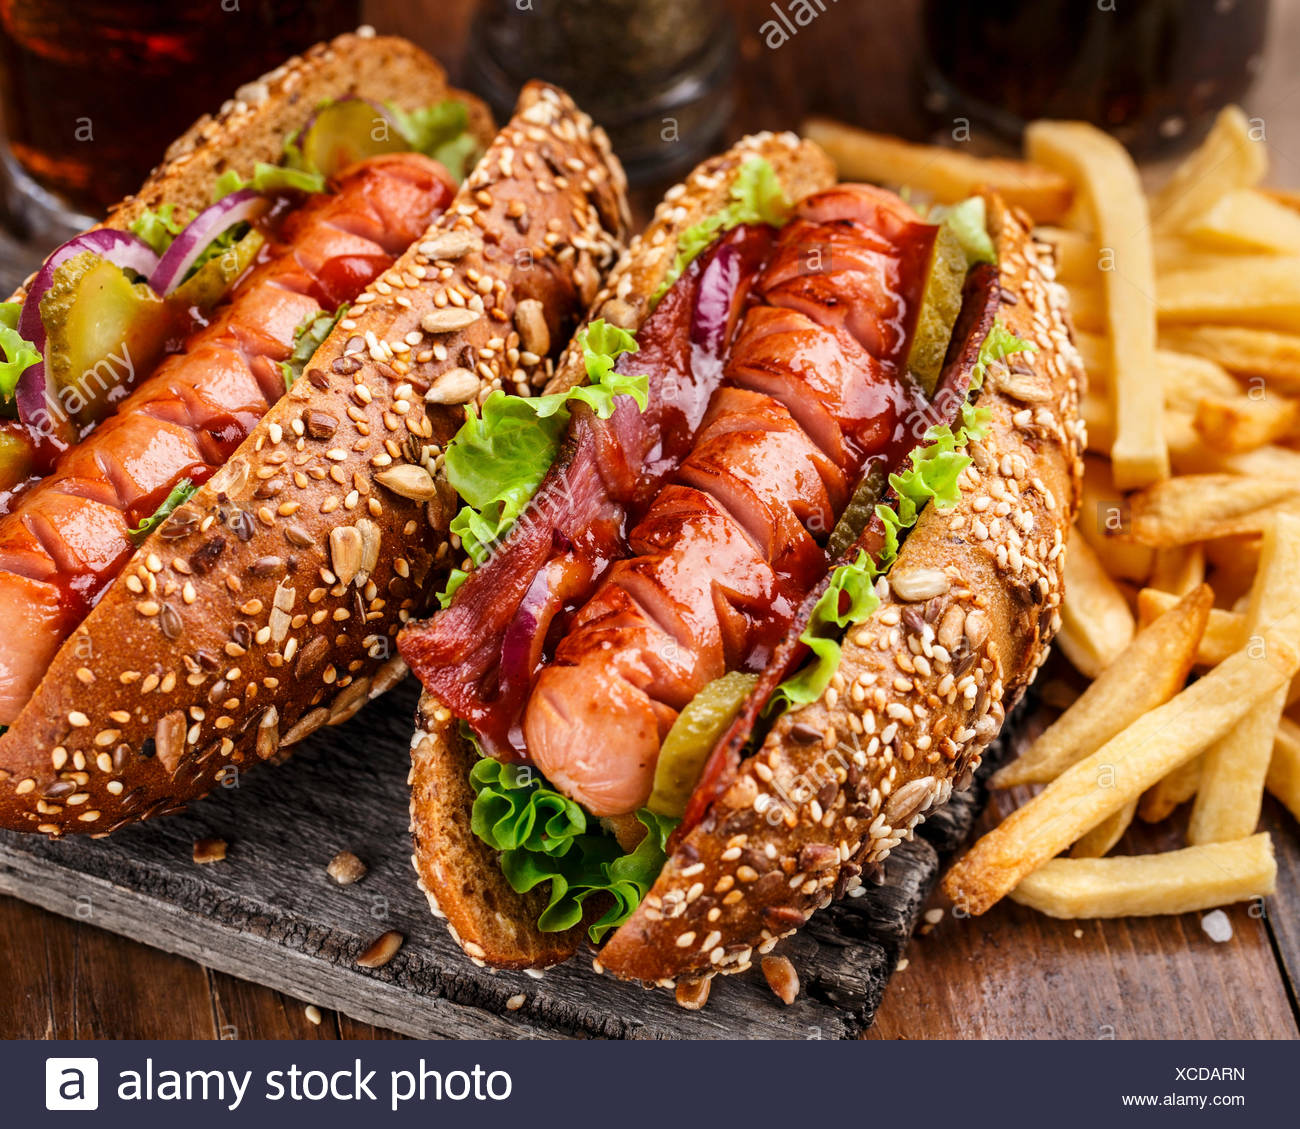 Barbecue grilled hot dog with french fries - Stock Image